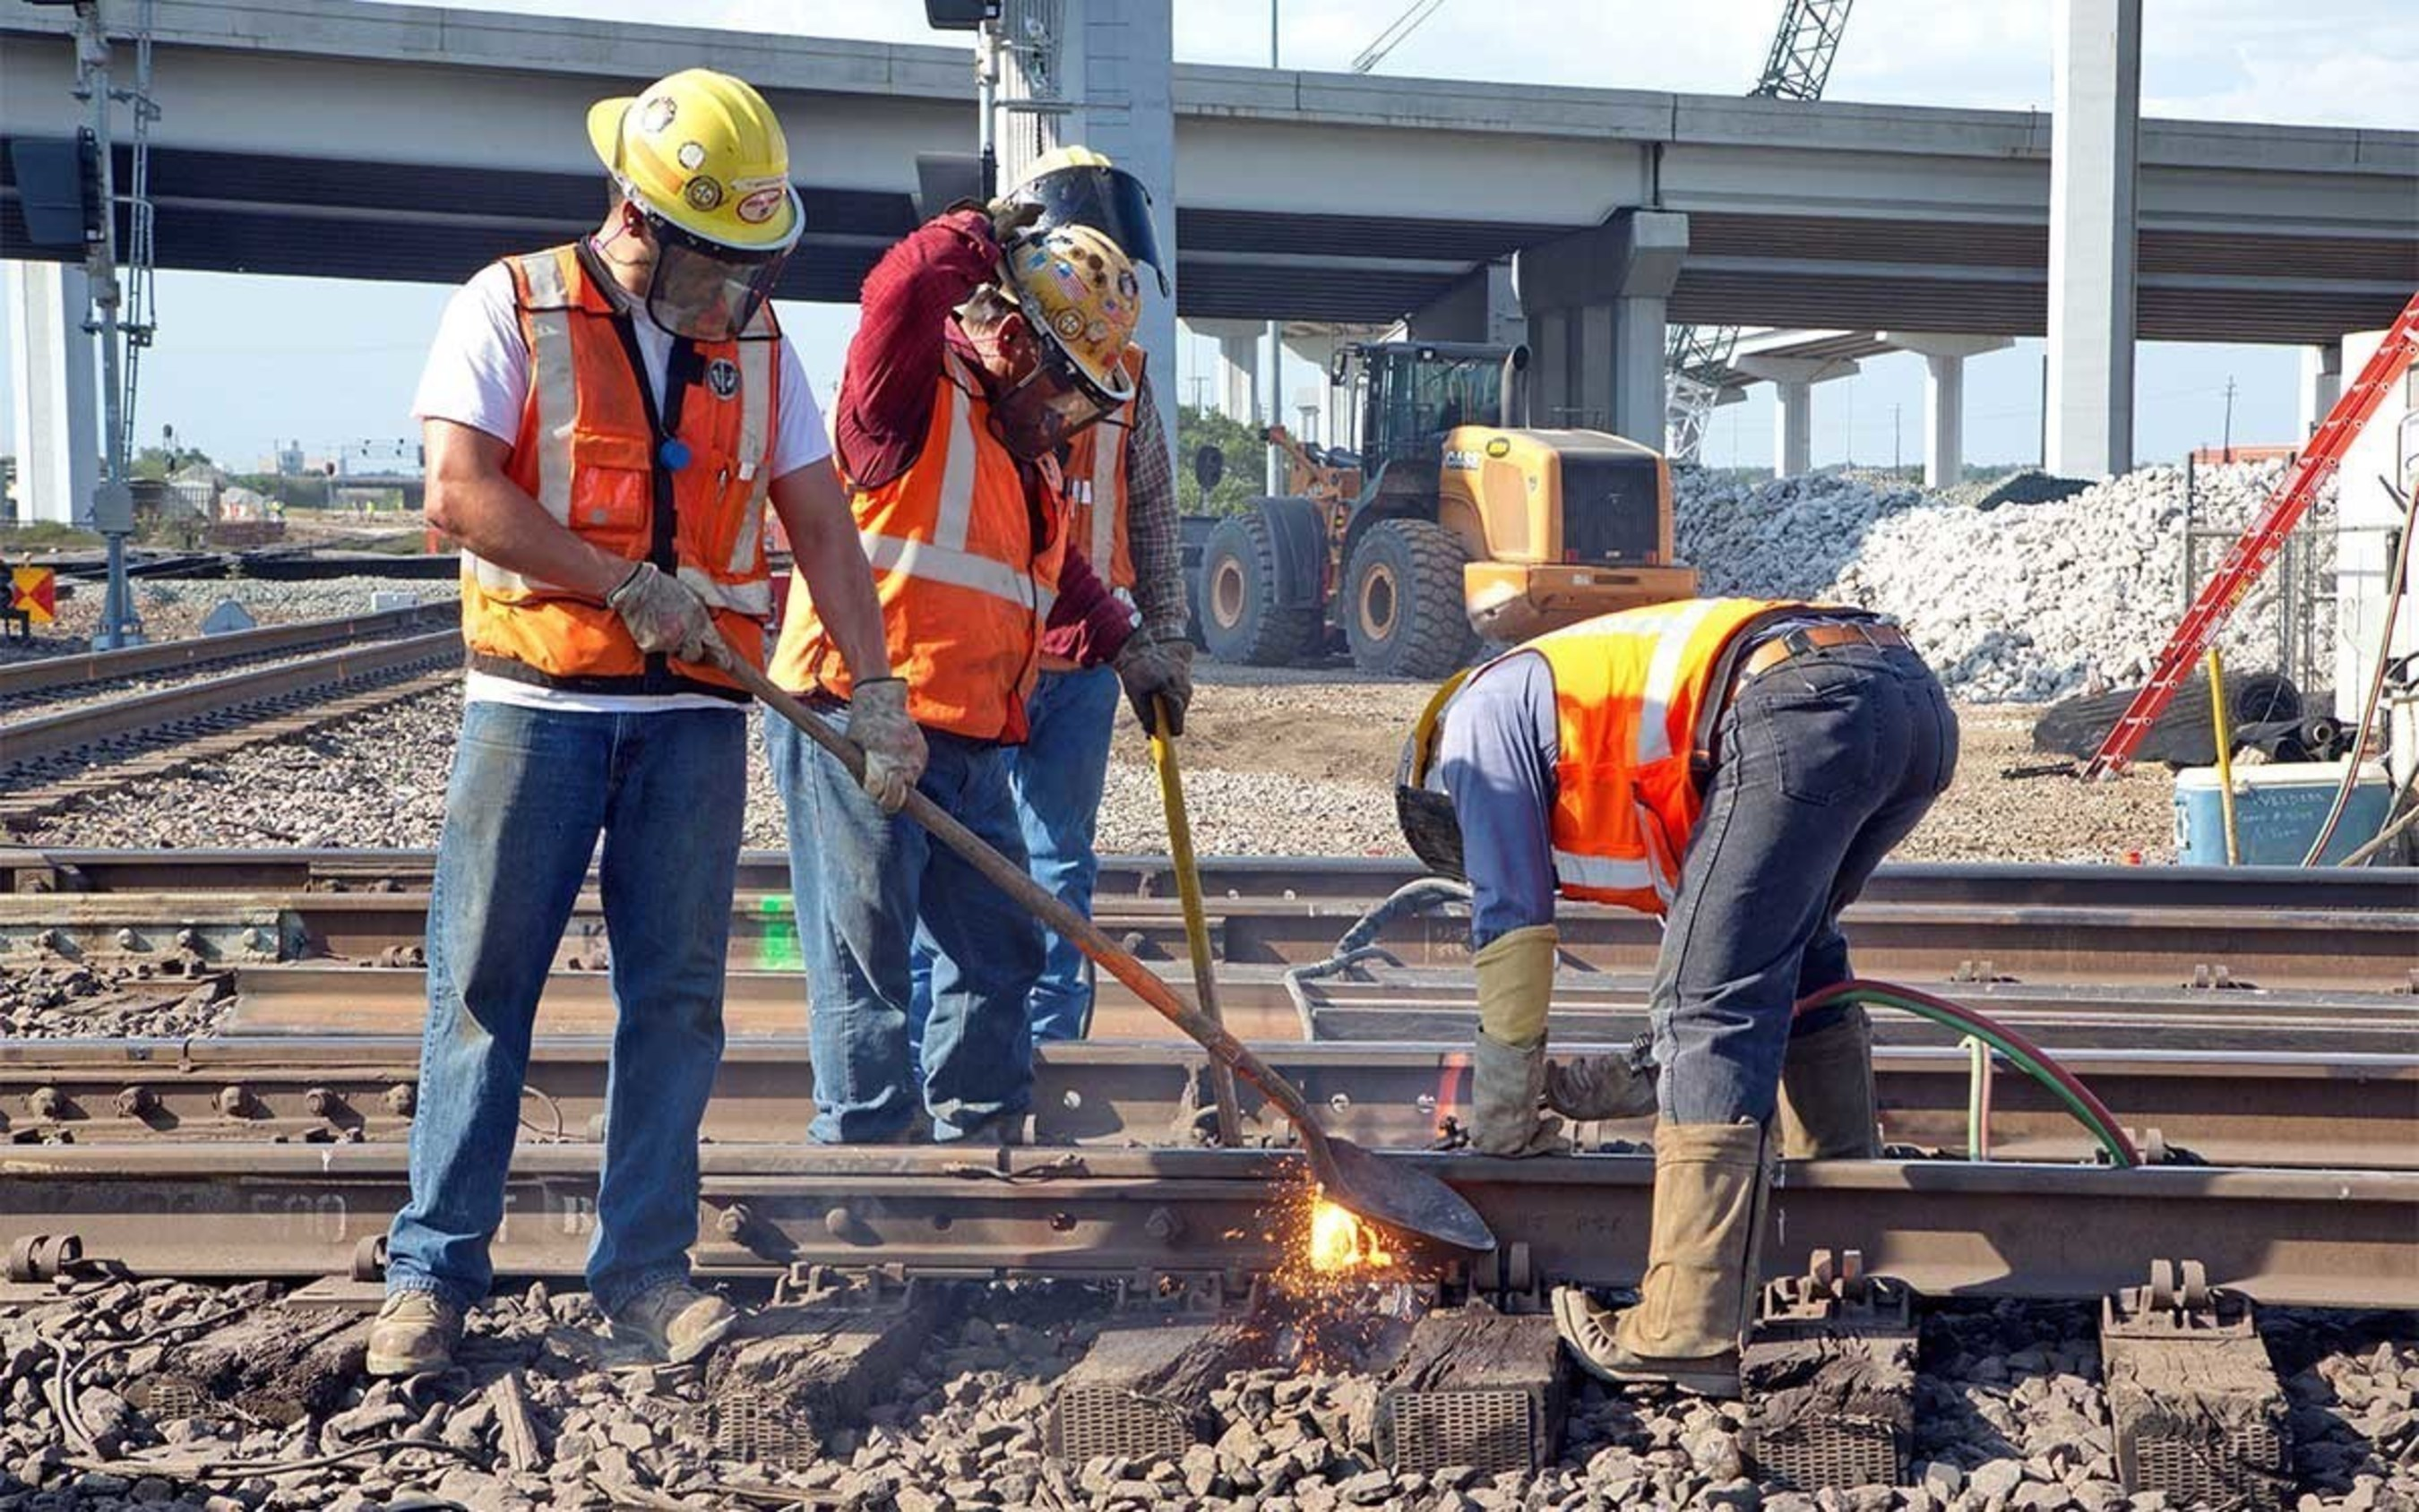 Union Pacific achieved the safest first half of the year in its 154-year history with a record-low employee reportable injury rate of 0.70 for every 200,000 employee-hours worked. The company was the safest Class I railroad in the U.S. last year, based on its 2015 employee reportable injury rate.